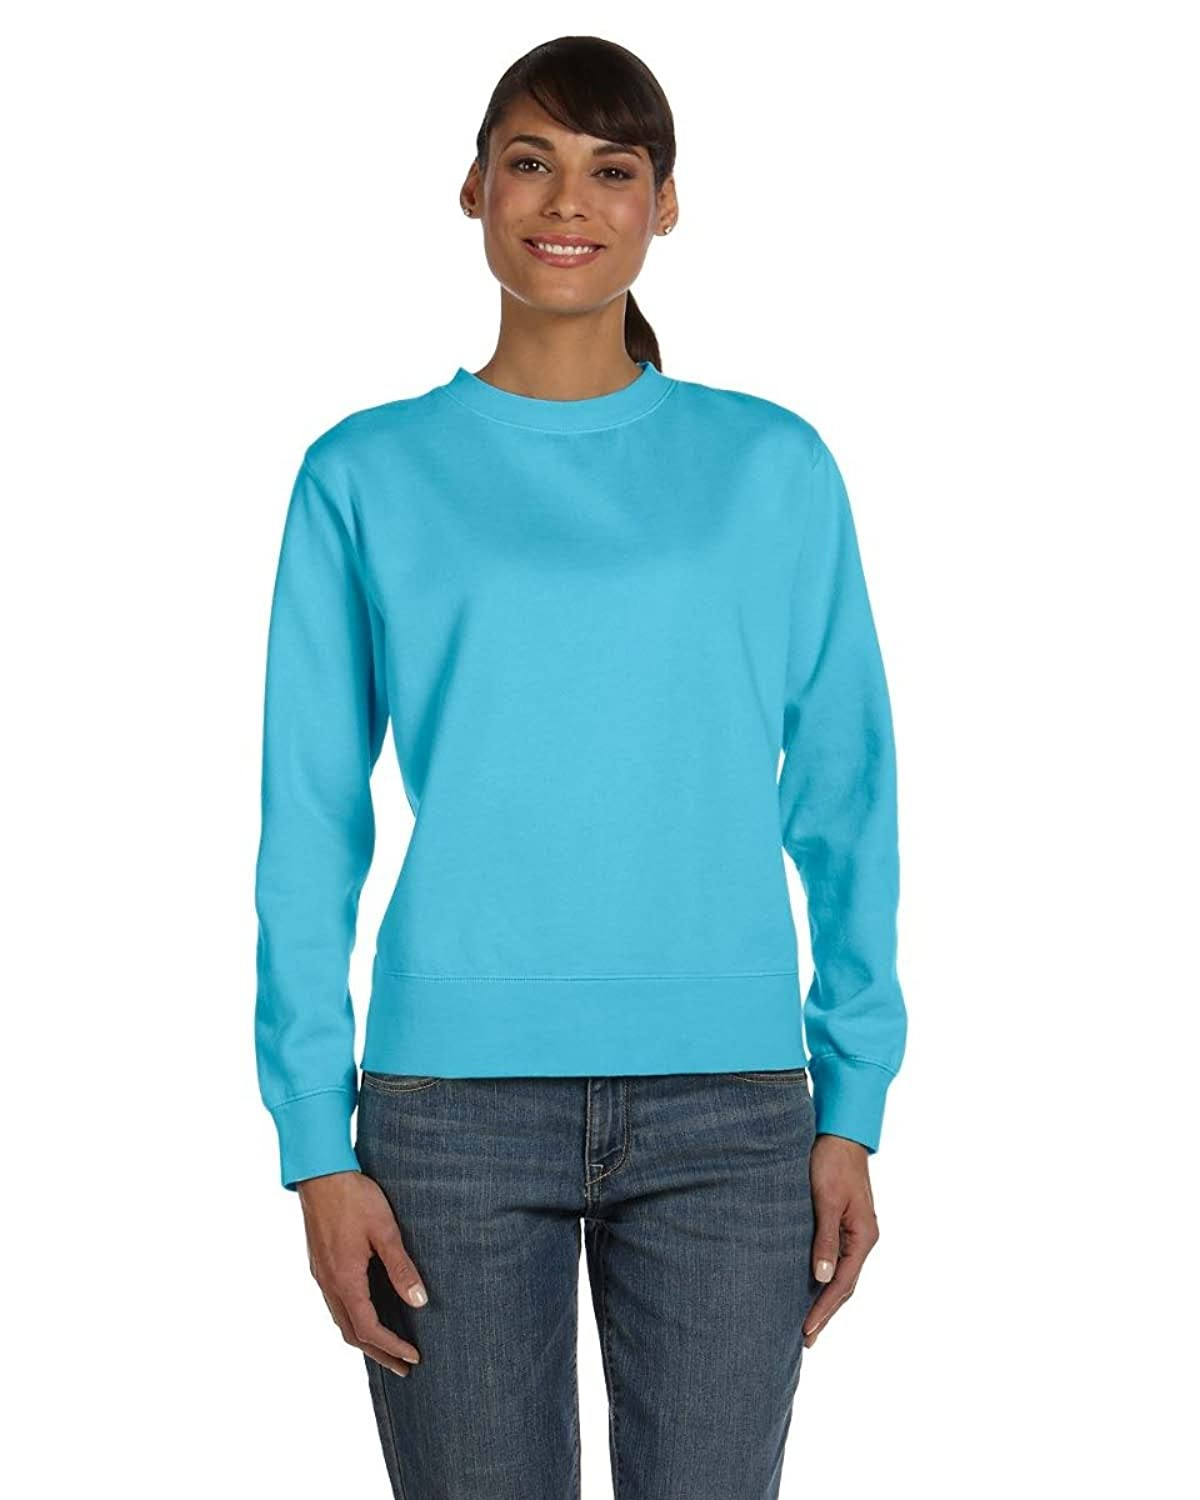 Comfort Colors Ladies' 10 Oz. Garment-dyed Wide-band Fleece Crew - Lagoon Blue - 2xl